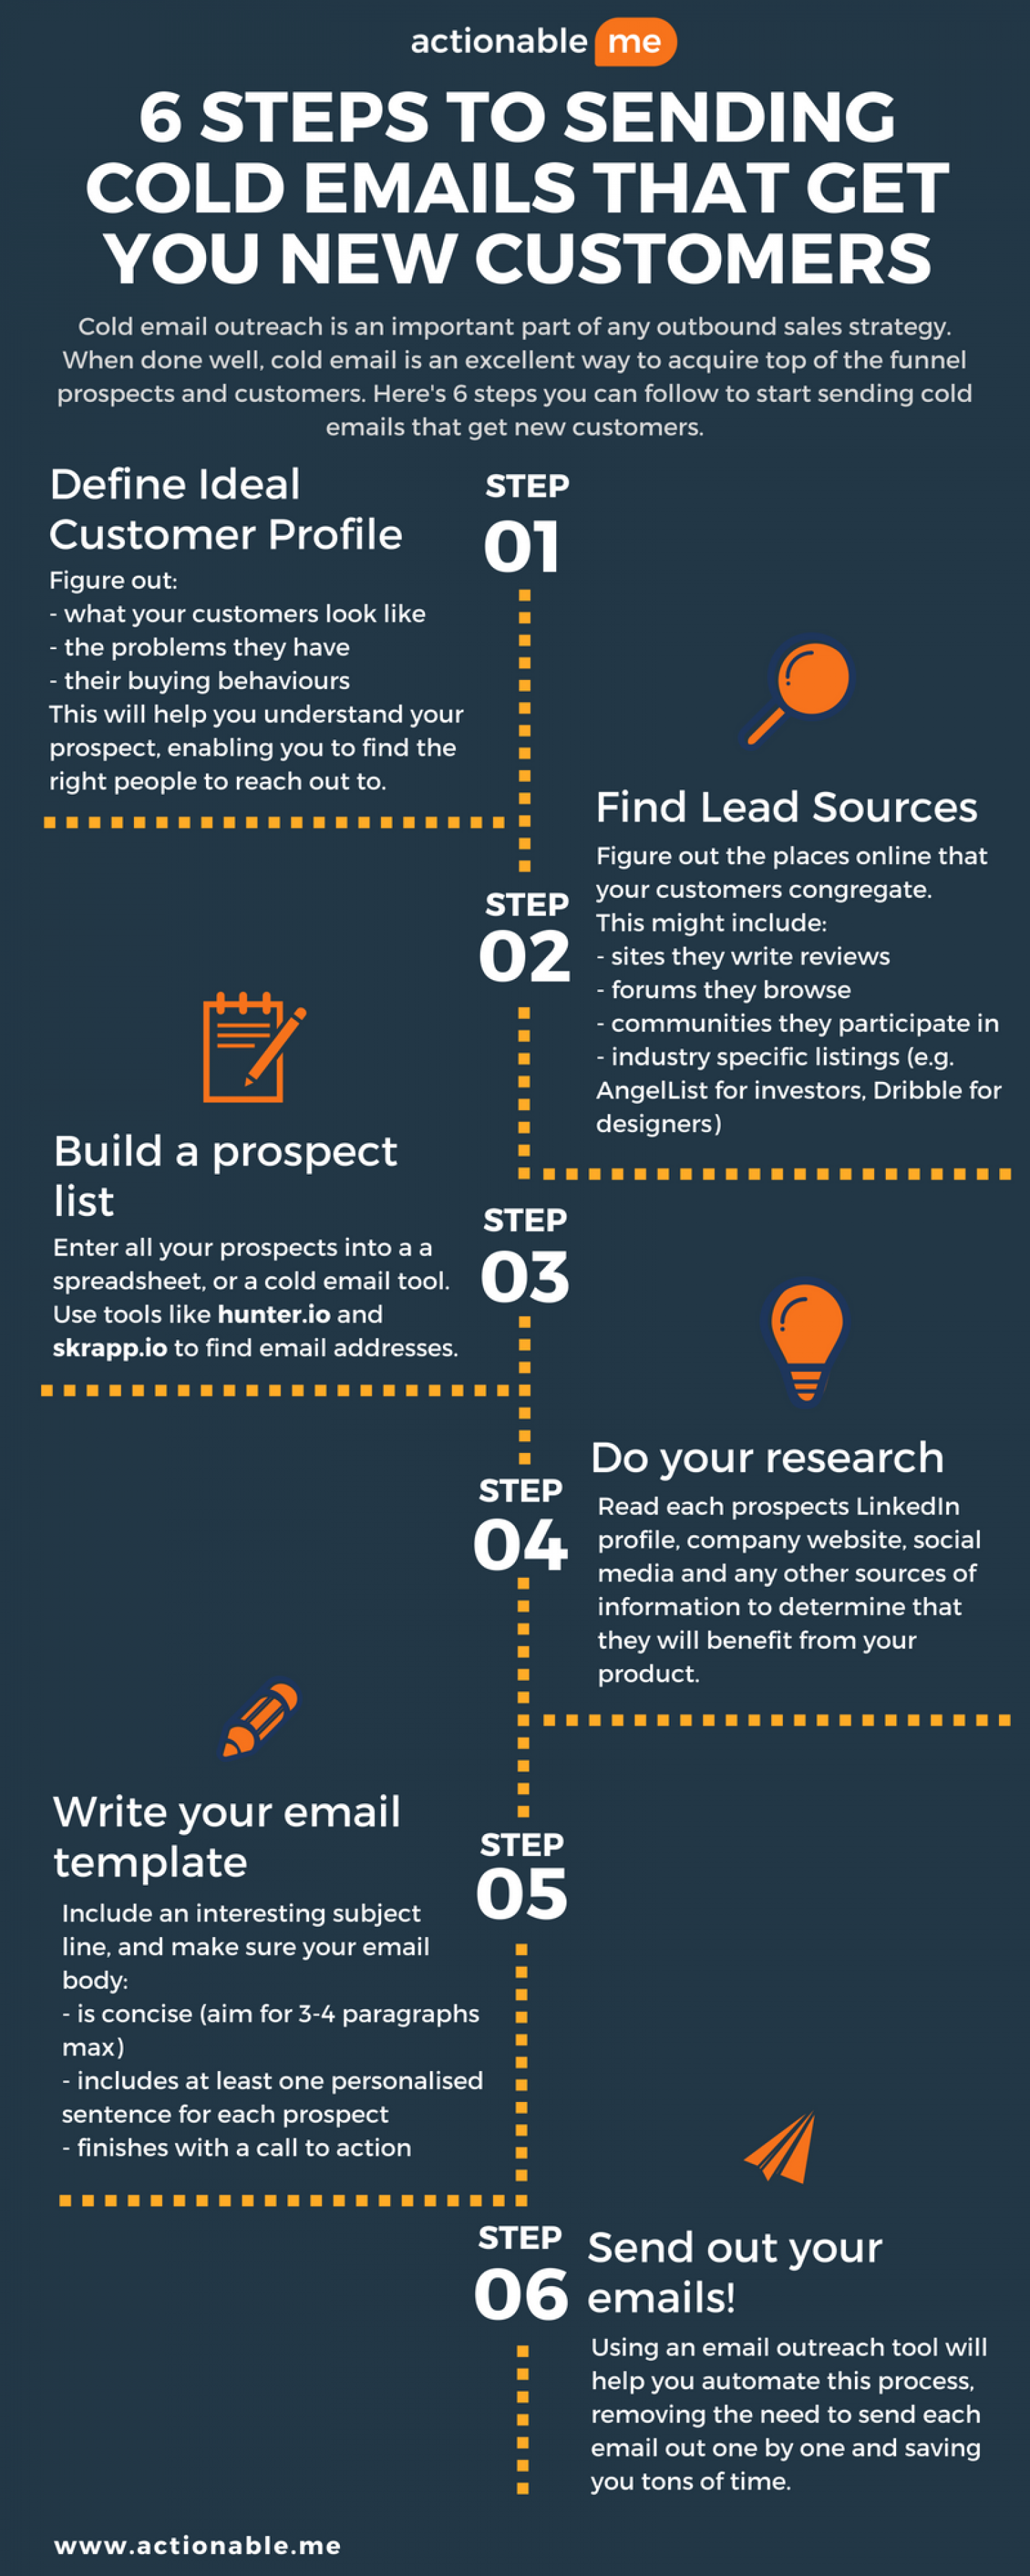 6 Steps to Sending Cold Emails That Get You New Customers Infographic